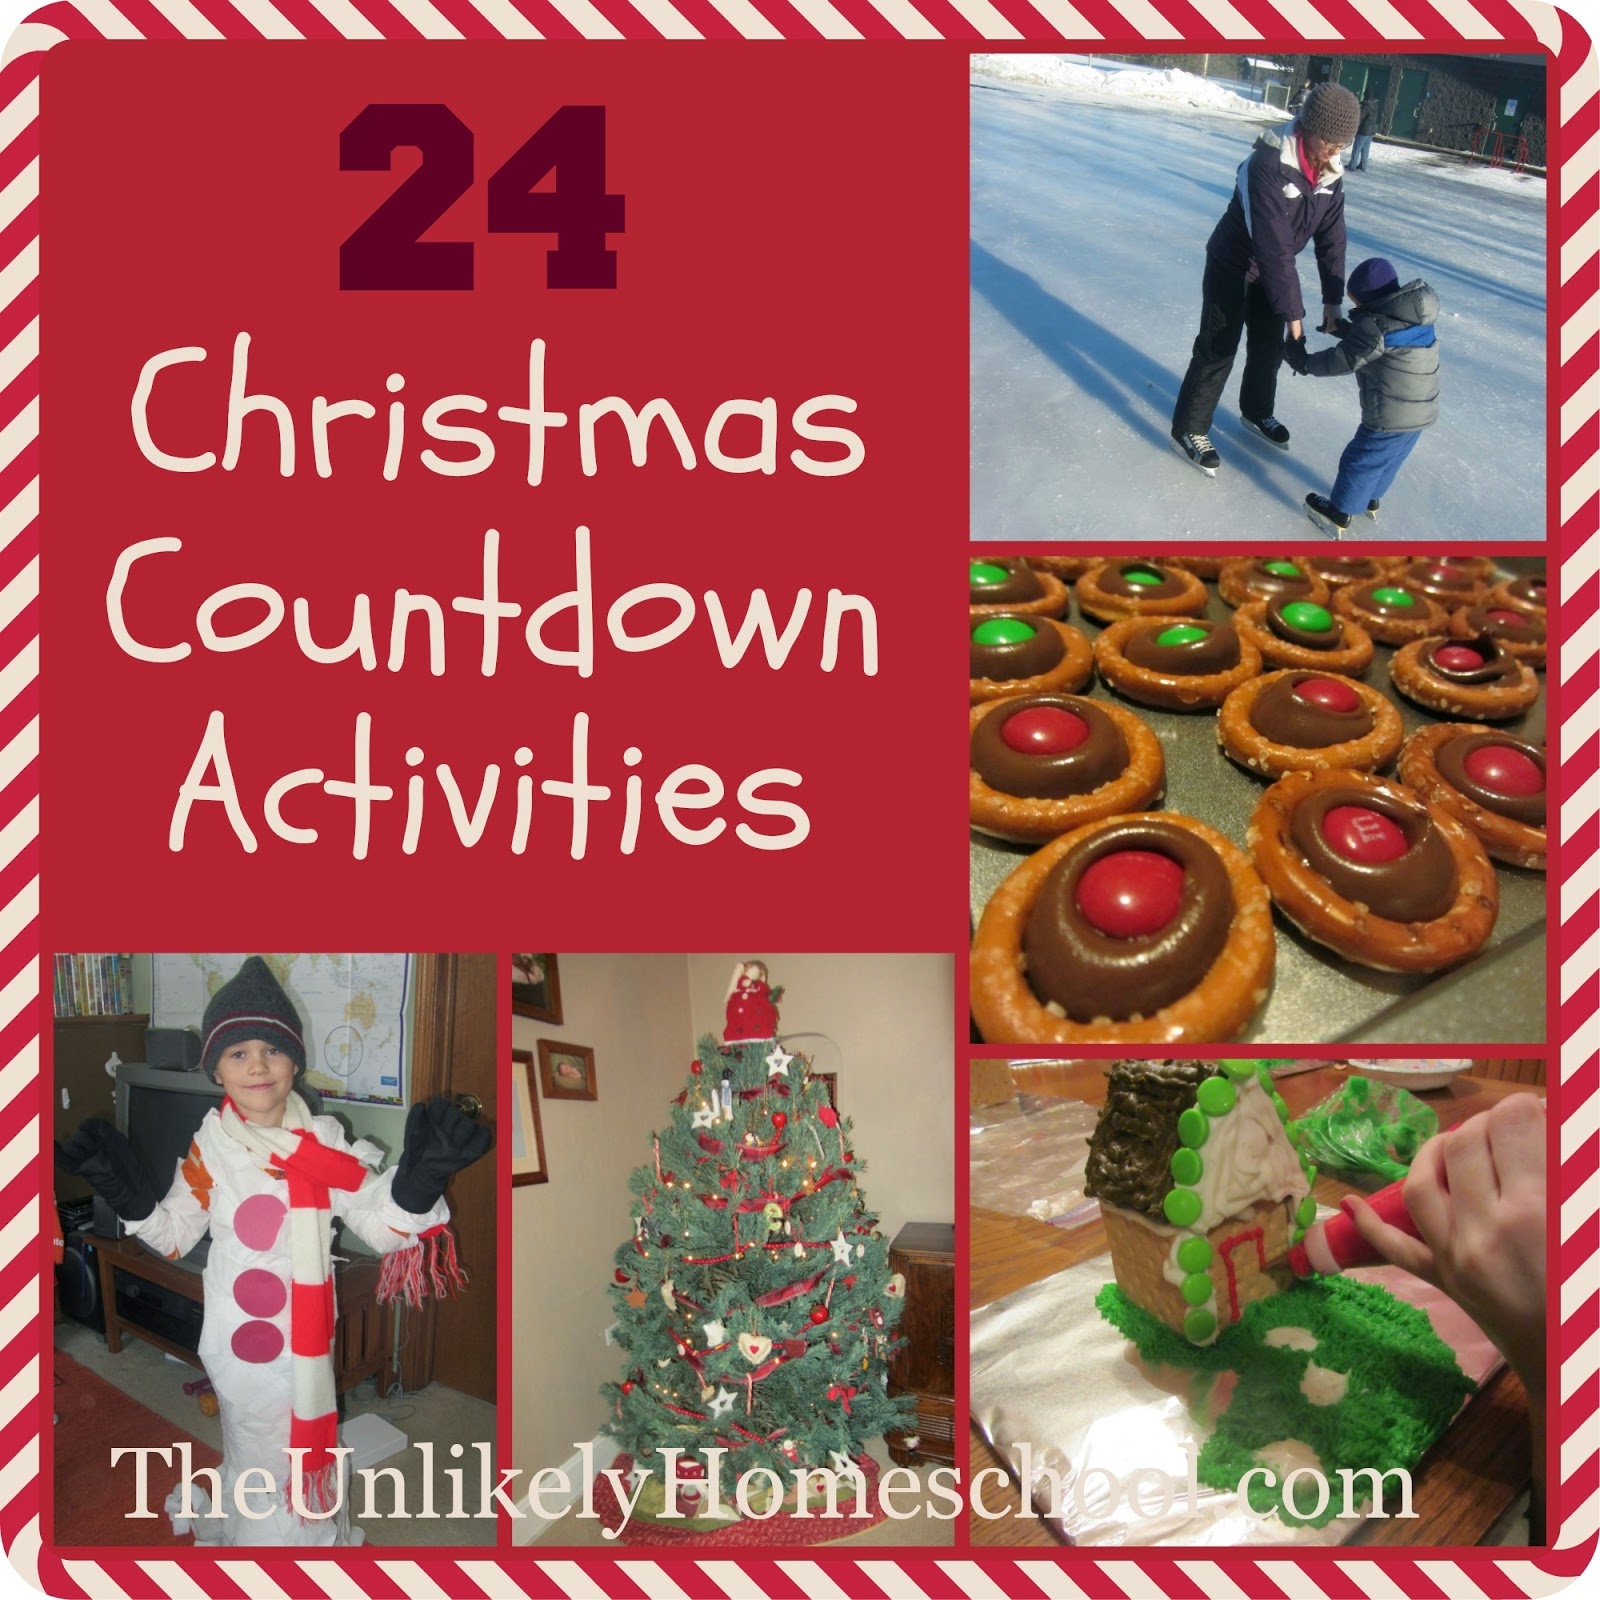 24 Christmas Countdown Activities {The Unlikely Homeschool}